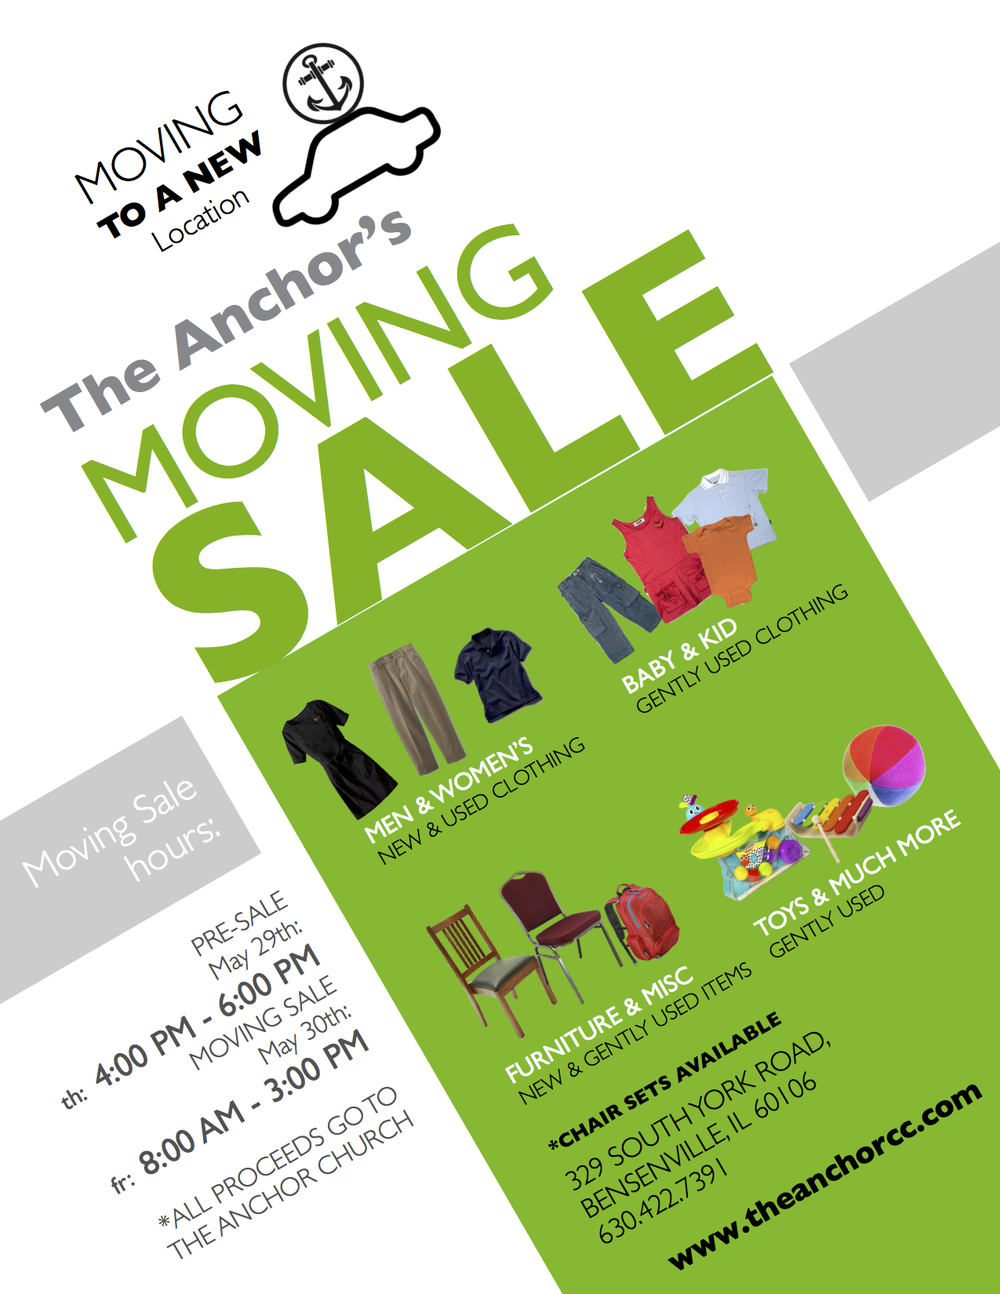 Moving Sale Flyer The Anchor Christian Church in Bensenville, IL